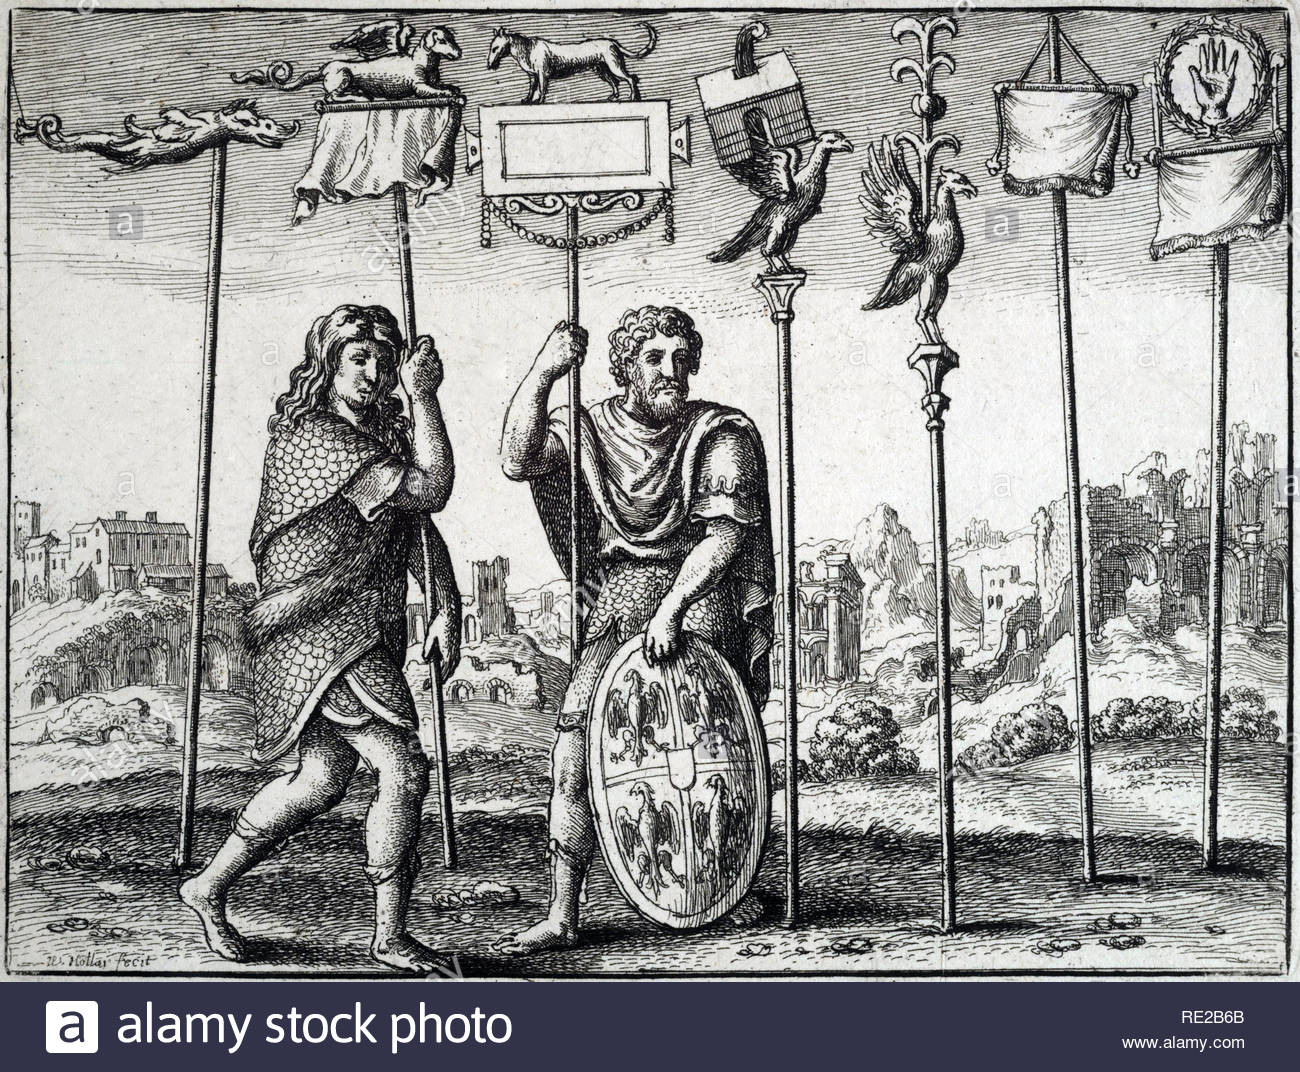 Seven Roman Standards, etching by Bohemian etcher Wenceslaus Hollar from 1600s - Stock Image